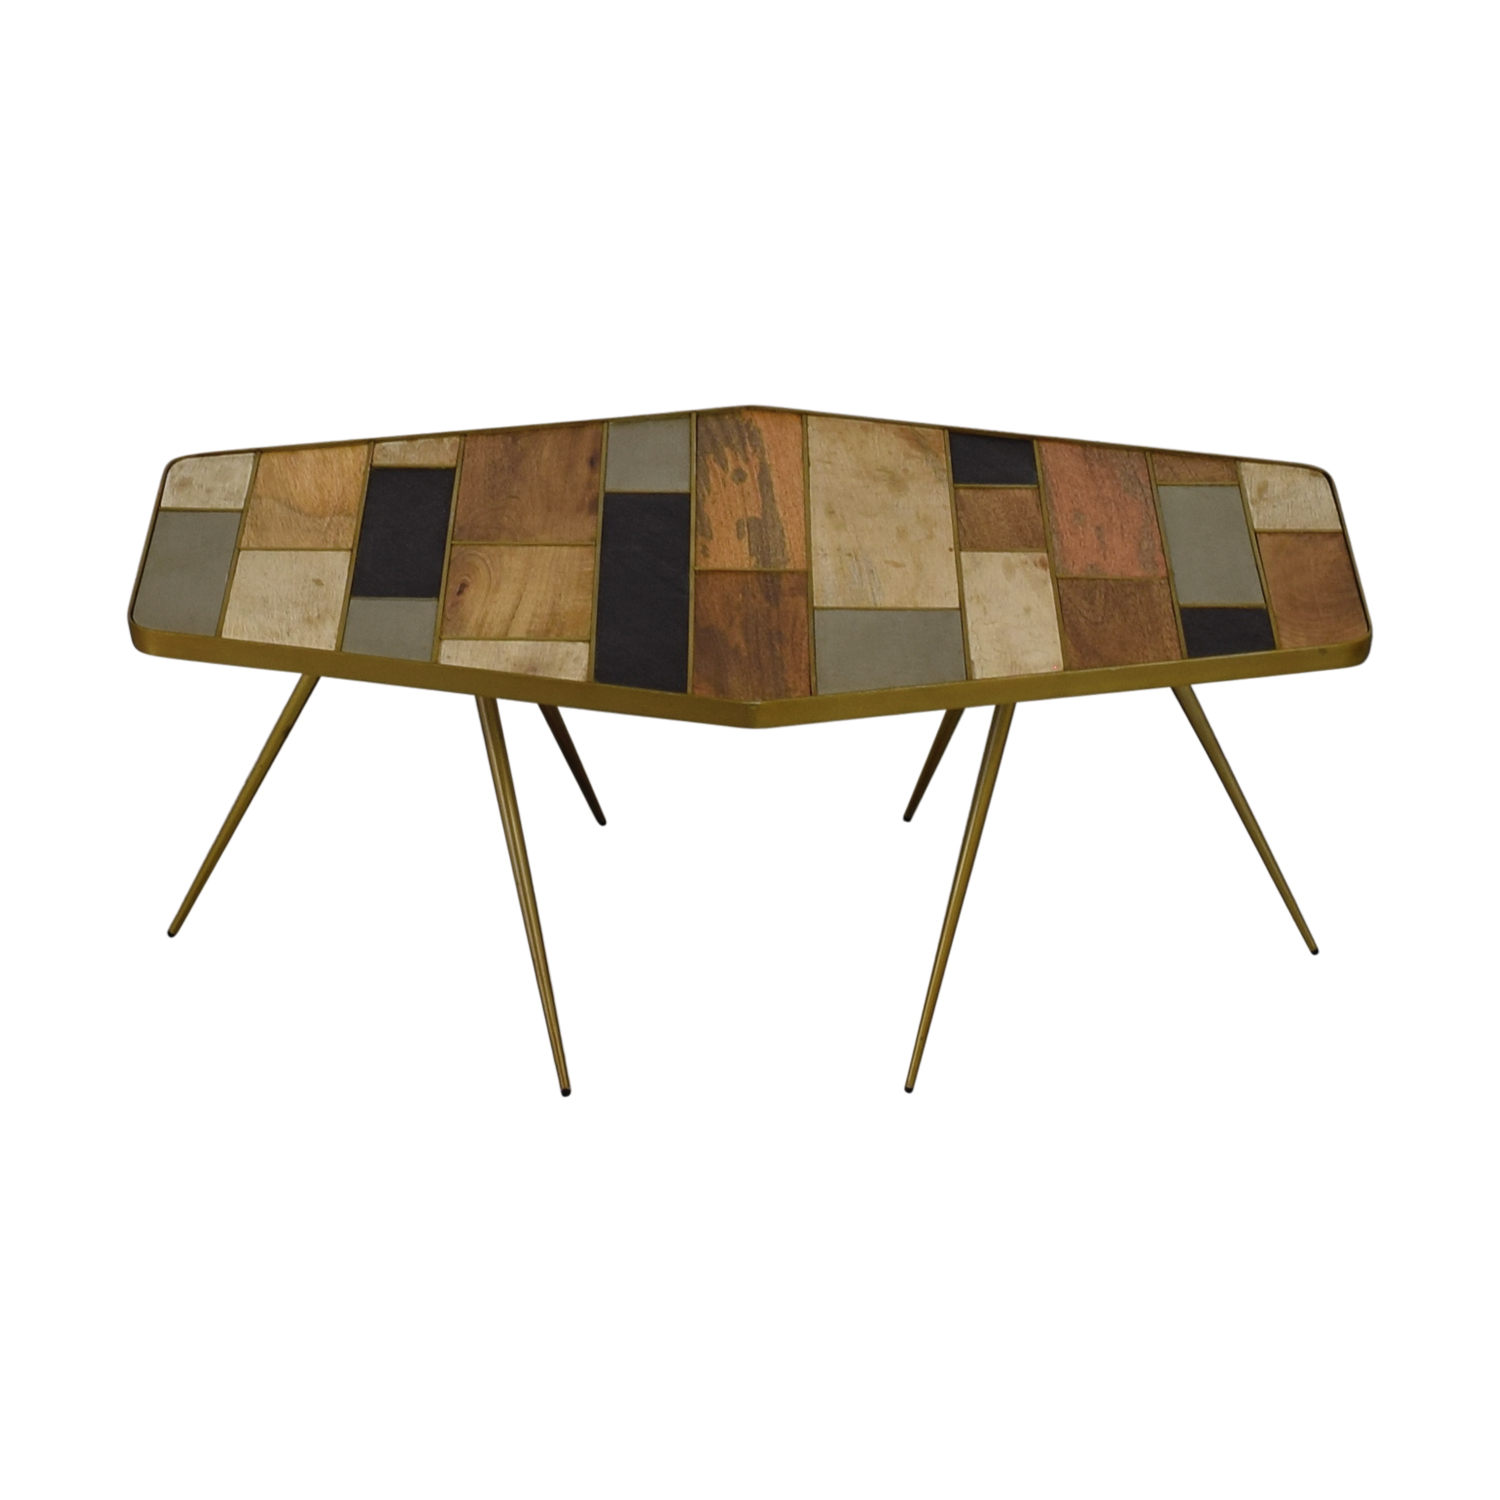 West Elm West Elm Roar and Rabbit Coffee Table nyc